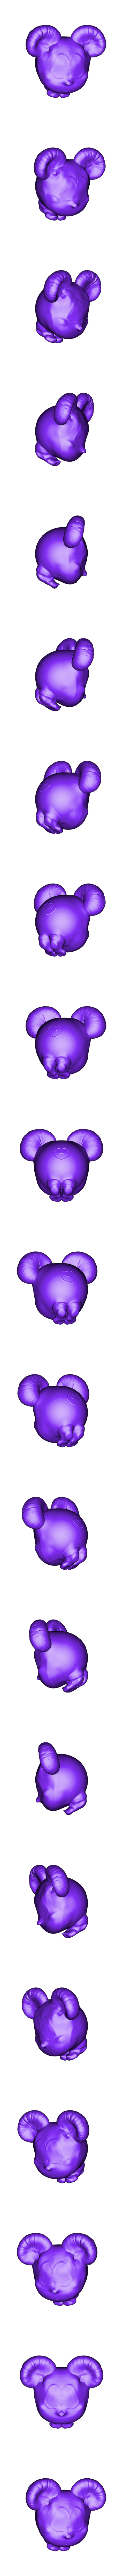 mickeybull.obj Download free OBJ file mickeybull (mouse boy series minitoys) • 3D printable design, Majin59